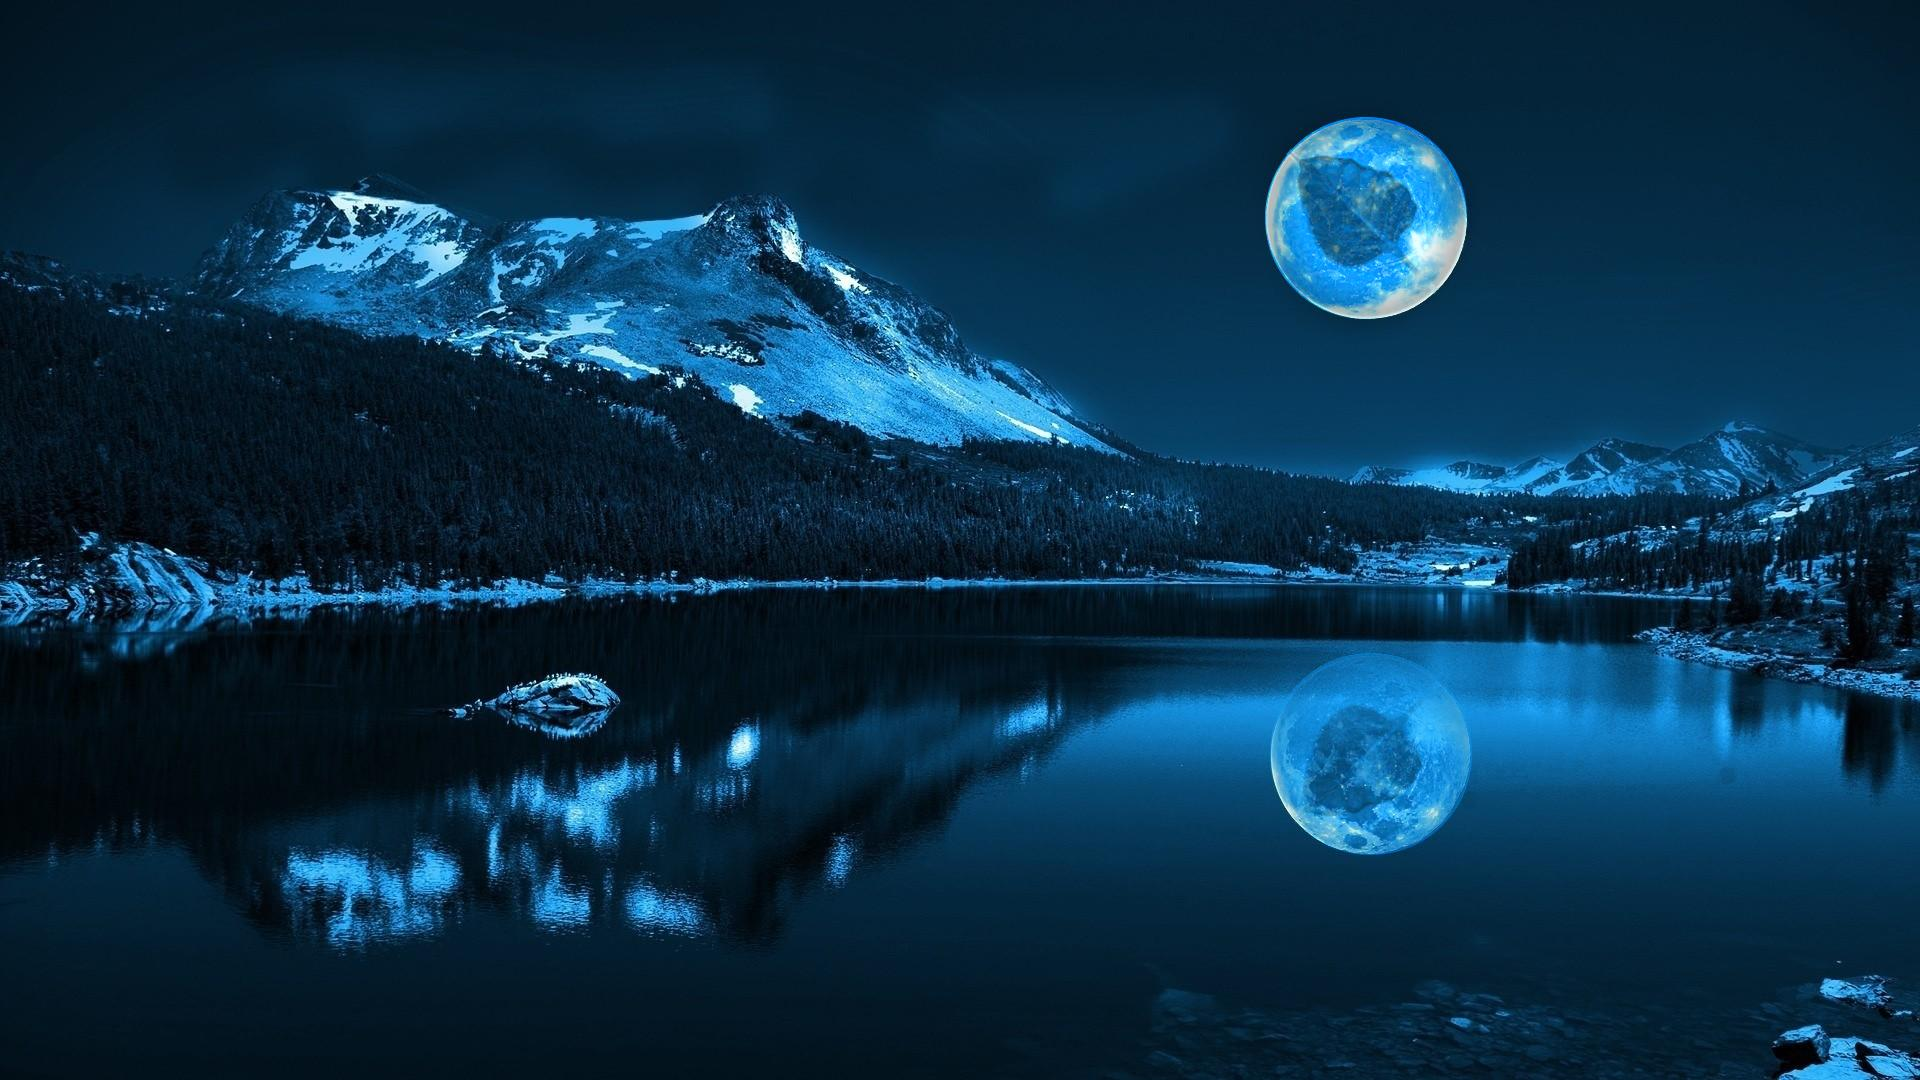 cool moon picture